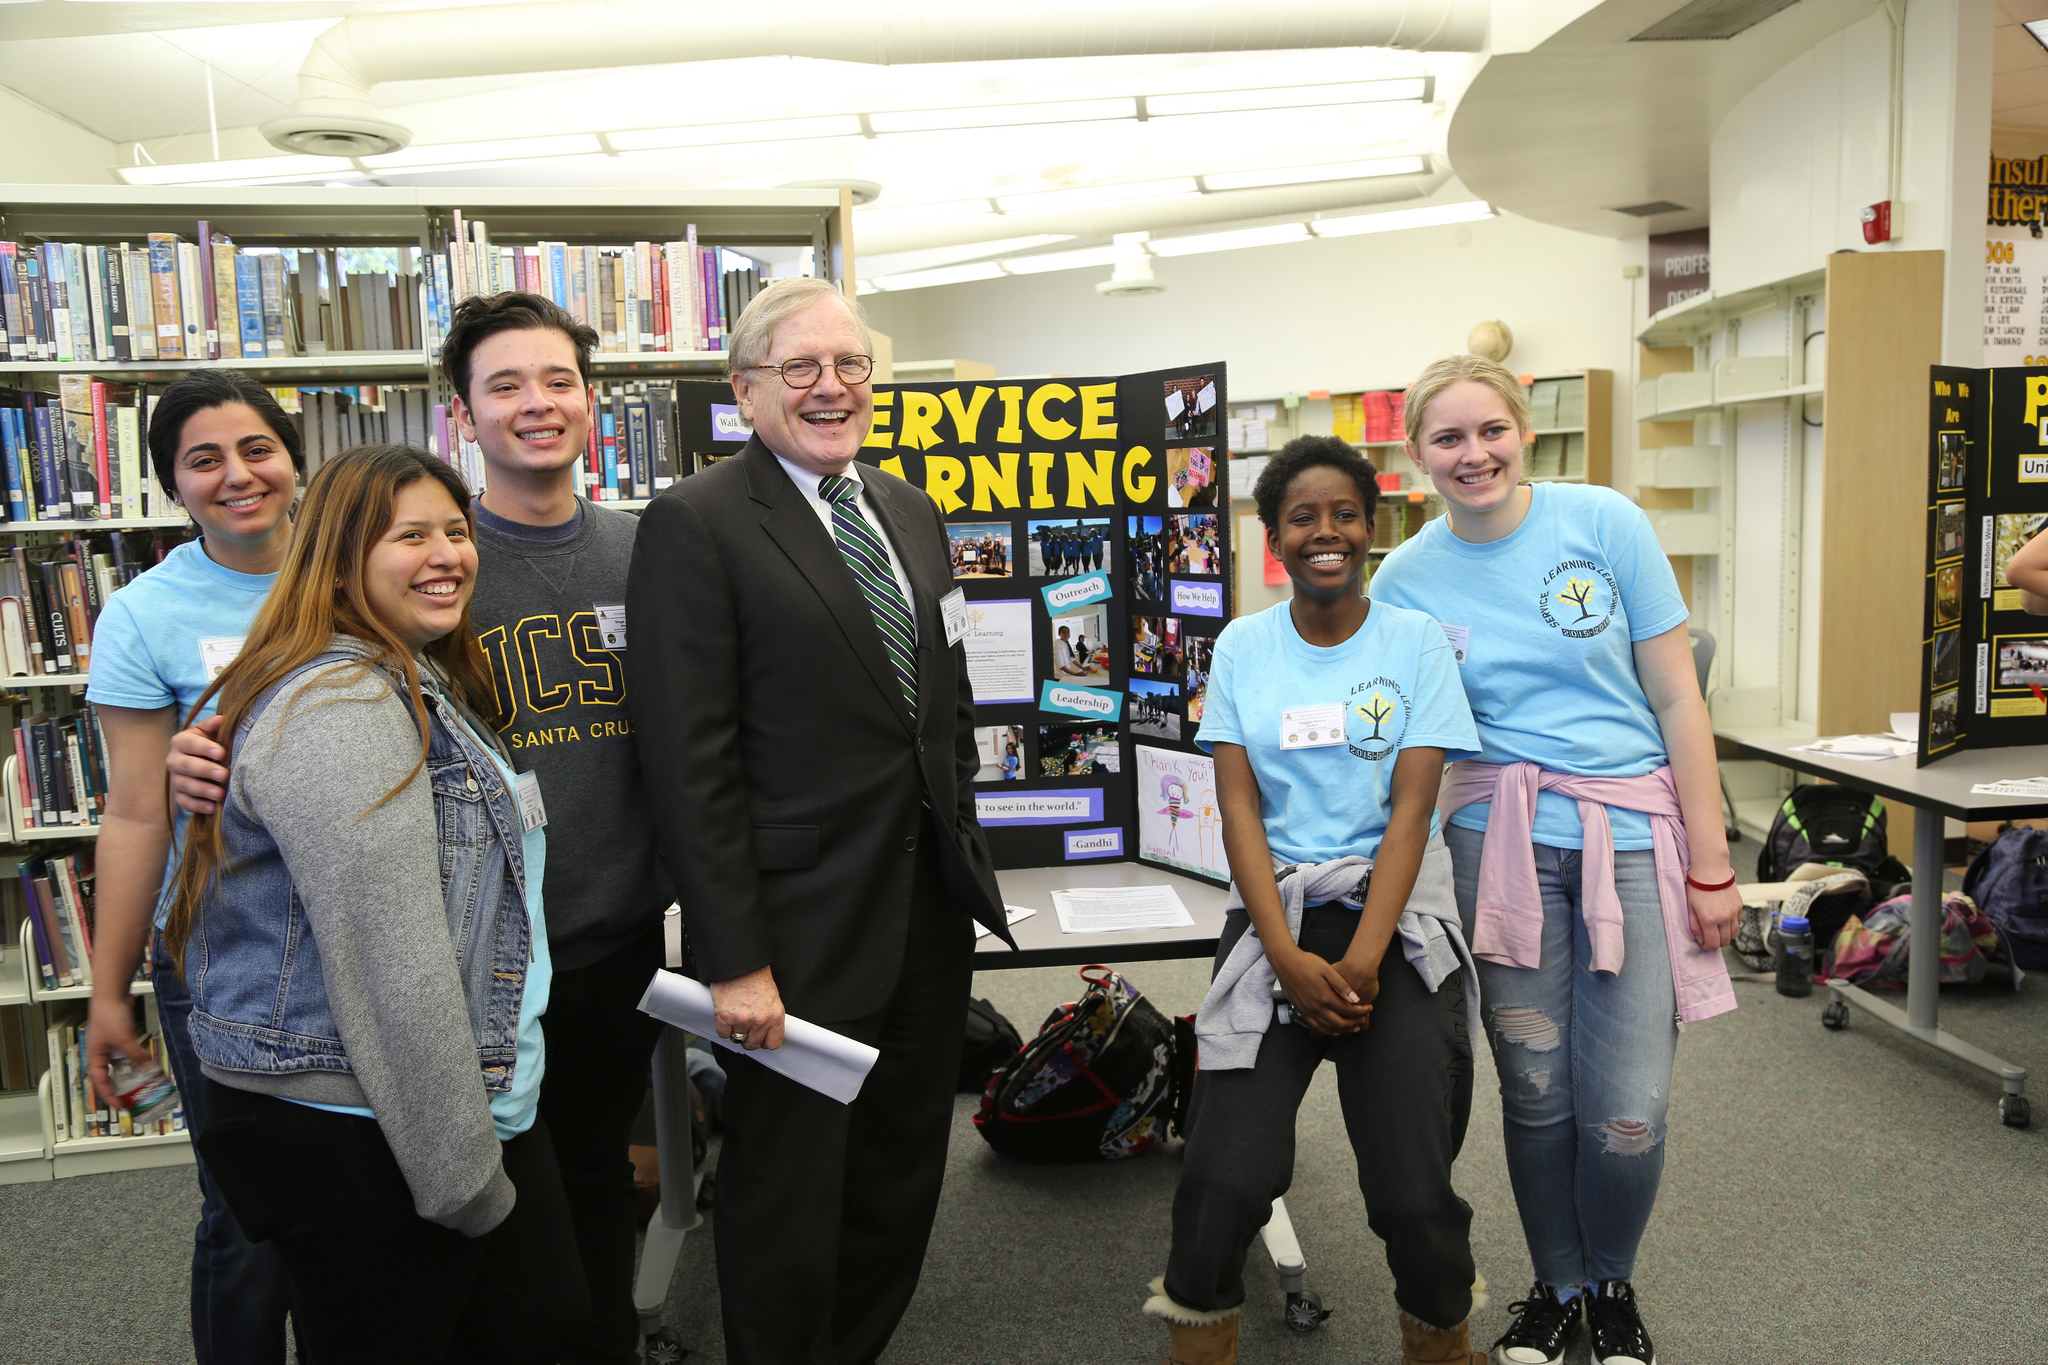 2016 Civic Learning Award of Distinction: Palos Verdes Peninsula High School